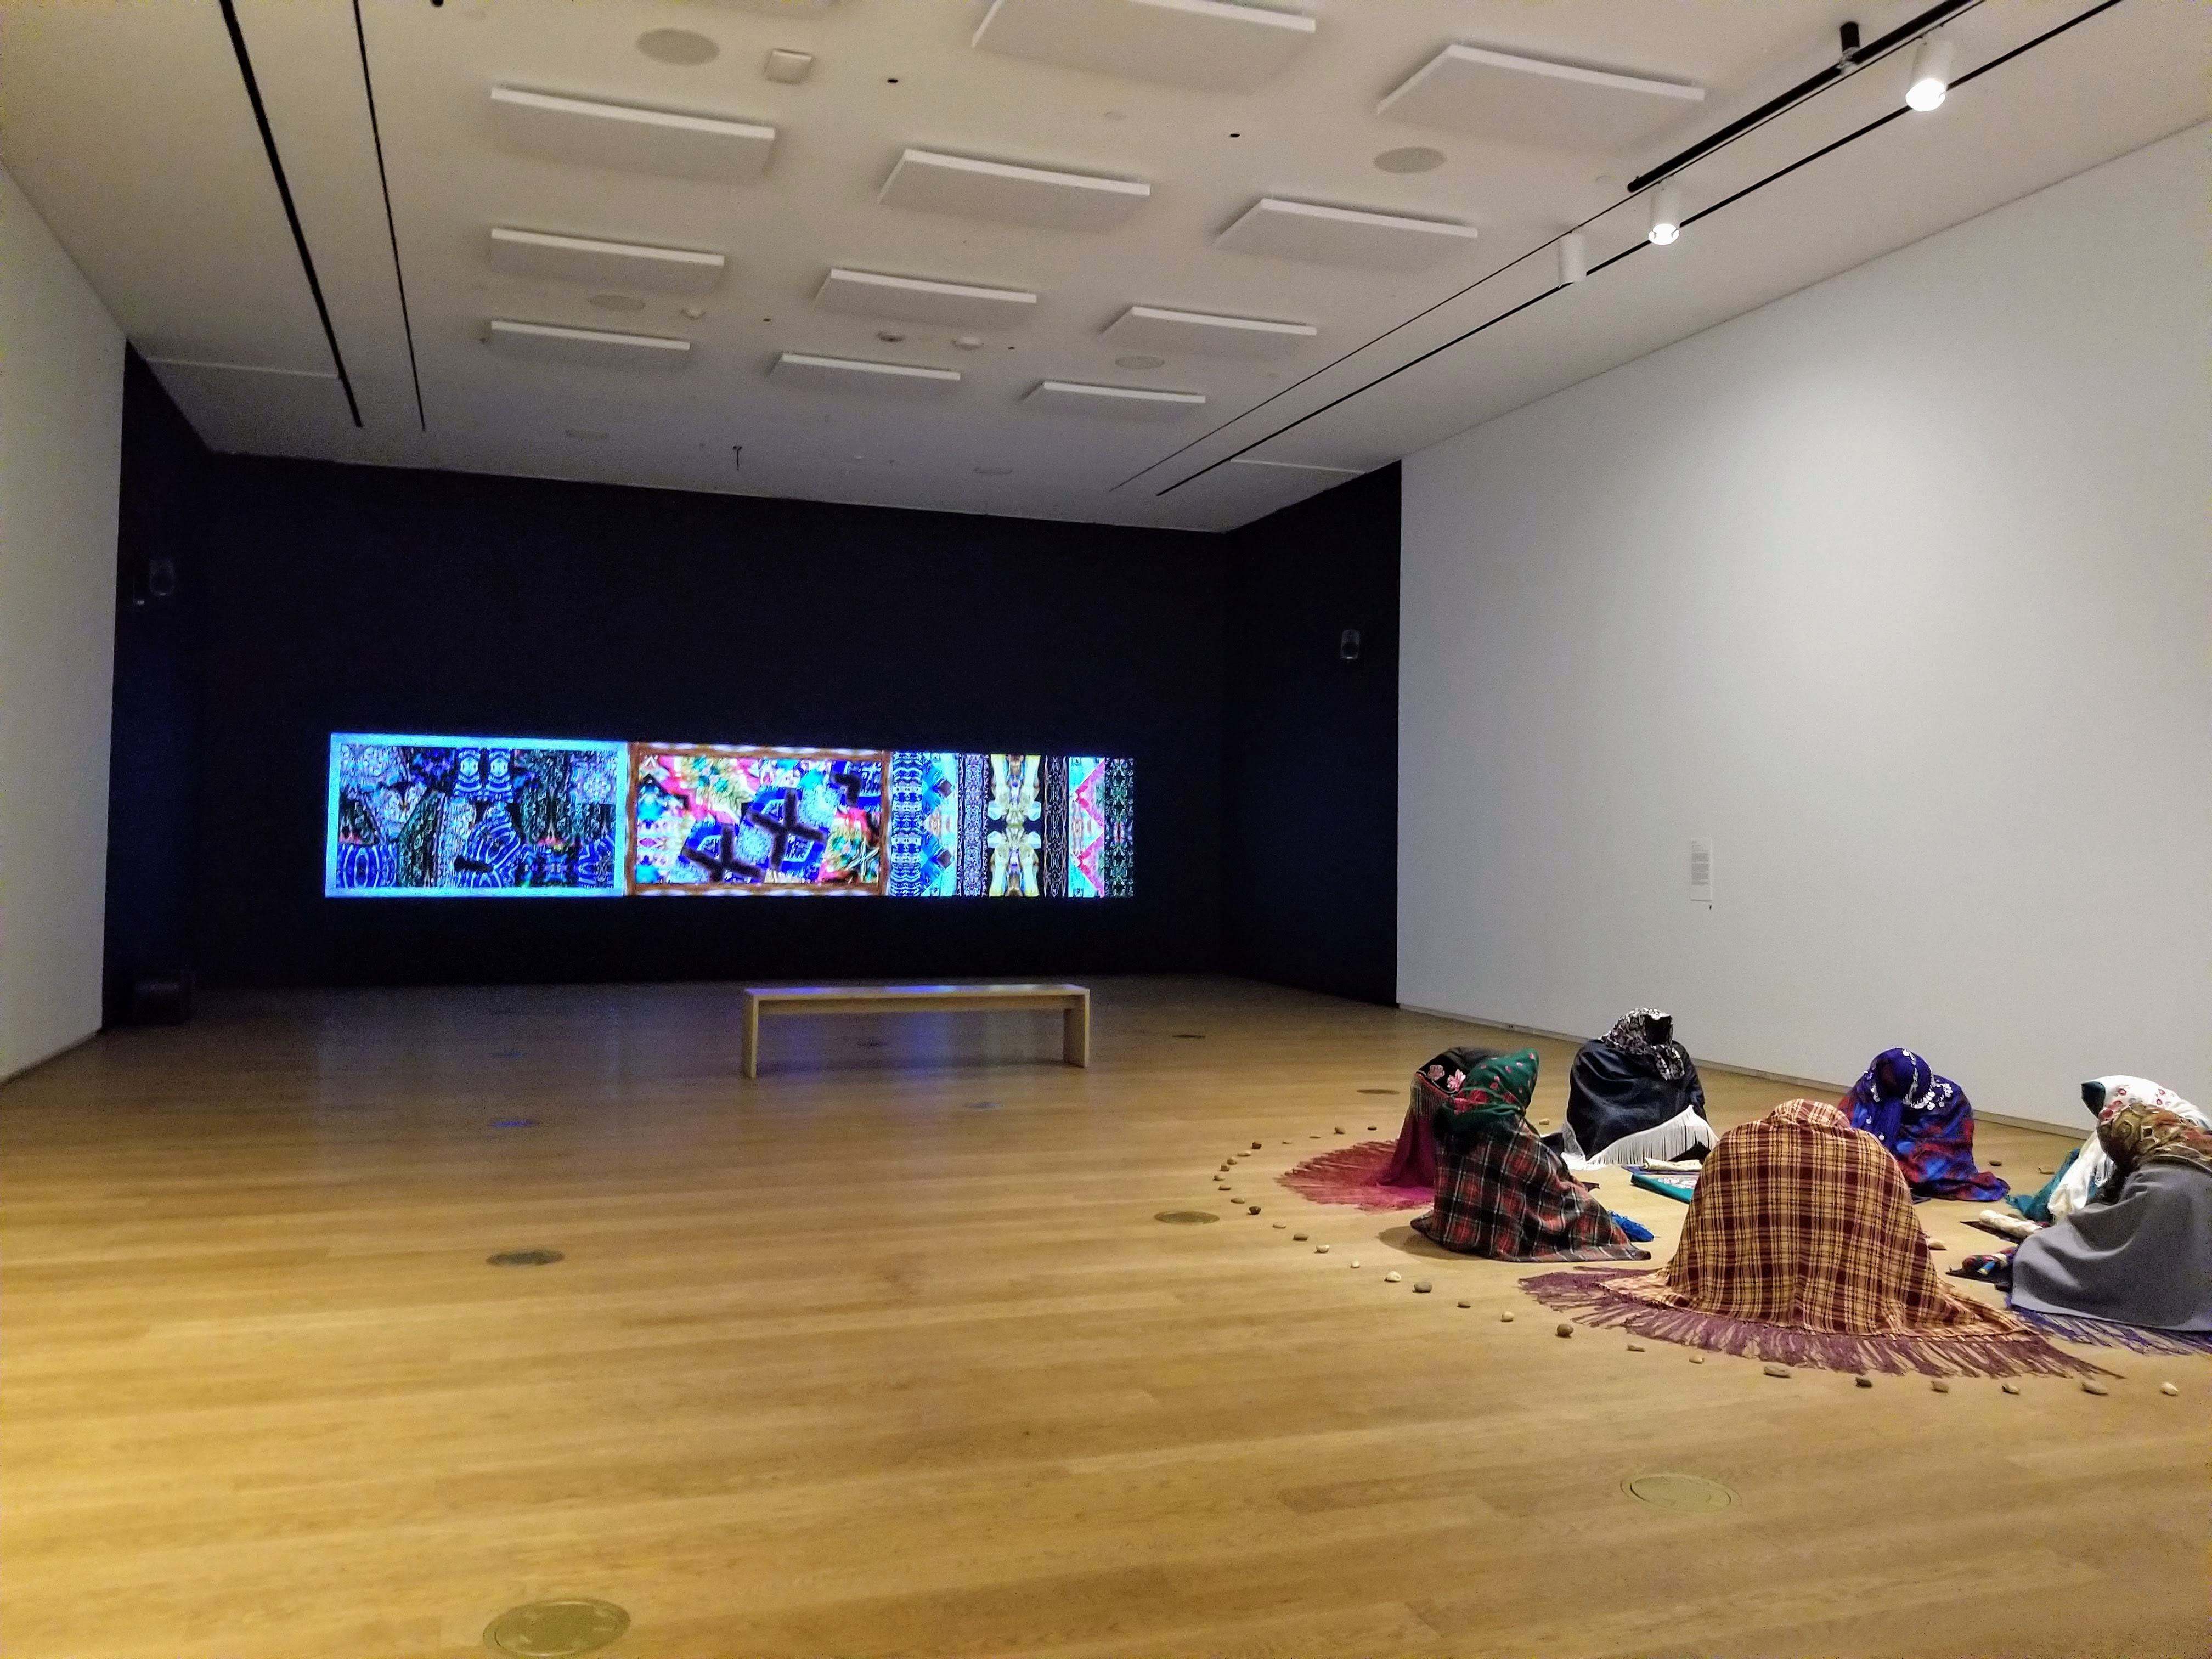 Exhibit at the Remai Modern